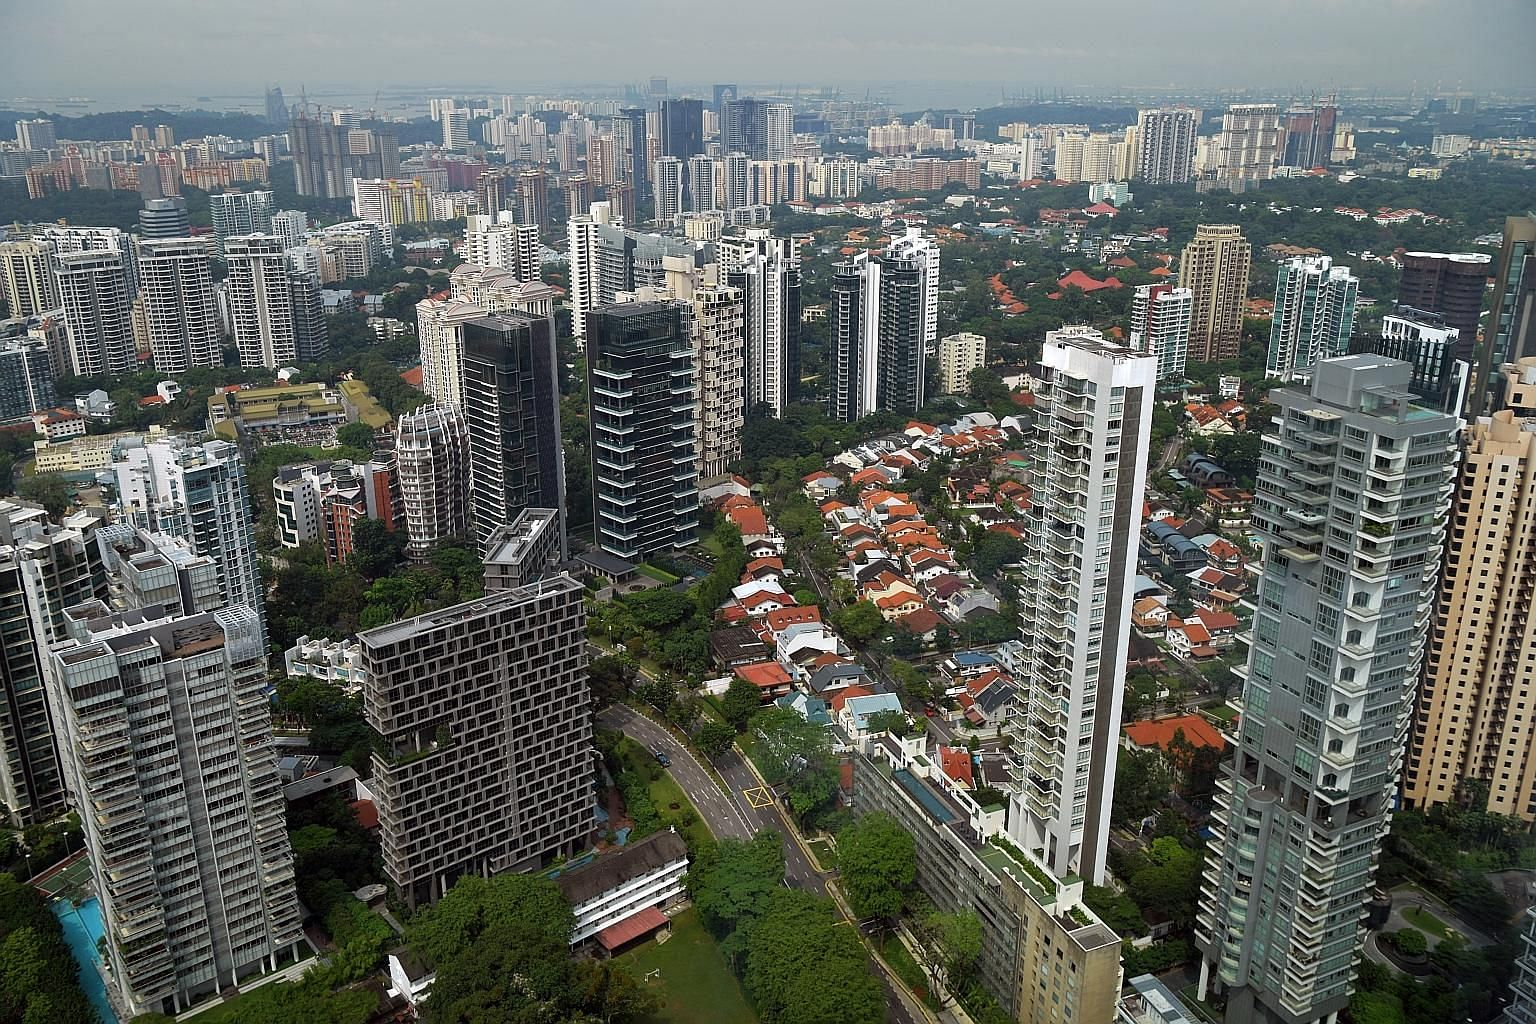 Last year, Housing Board flats made up 73 per cent of the total housing stock, down from 78 per cent in 2006. Meanwhile, the proportion of private condo units and landed homes increased to 27 per cent, from 22 per cent, over the same period.